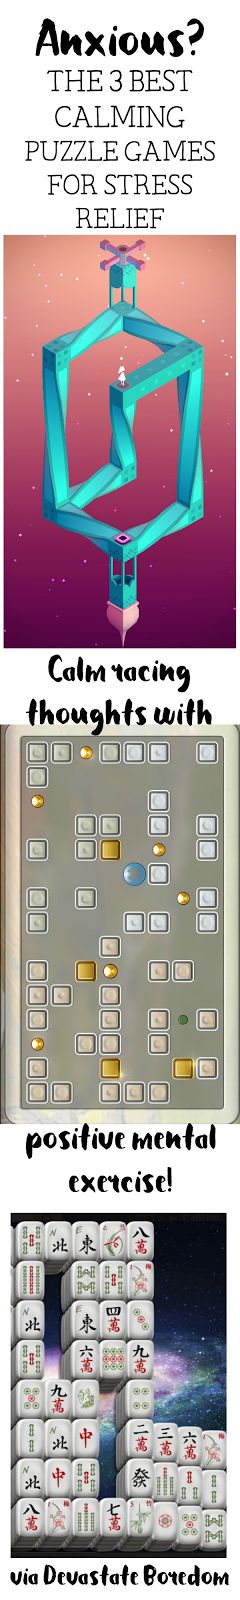 Playing my way to less stress?  Yes please!  Optical Illusion game looks especially cool...  Best 3 Relaxing Puzzle Game Apps to Distract You When You're Stressed or Anxious - Calming Mental Exercise on your Phone! via Devastate Boredom